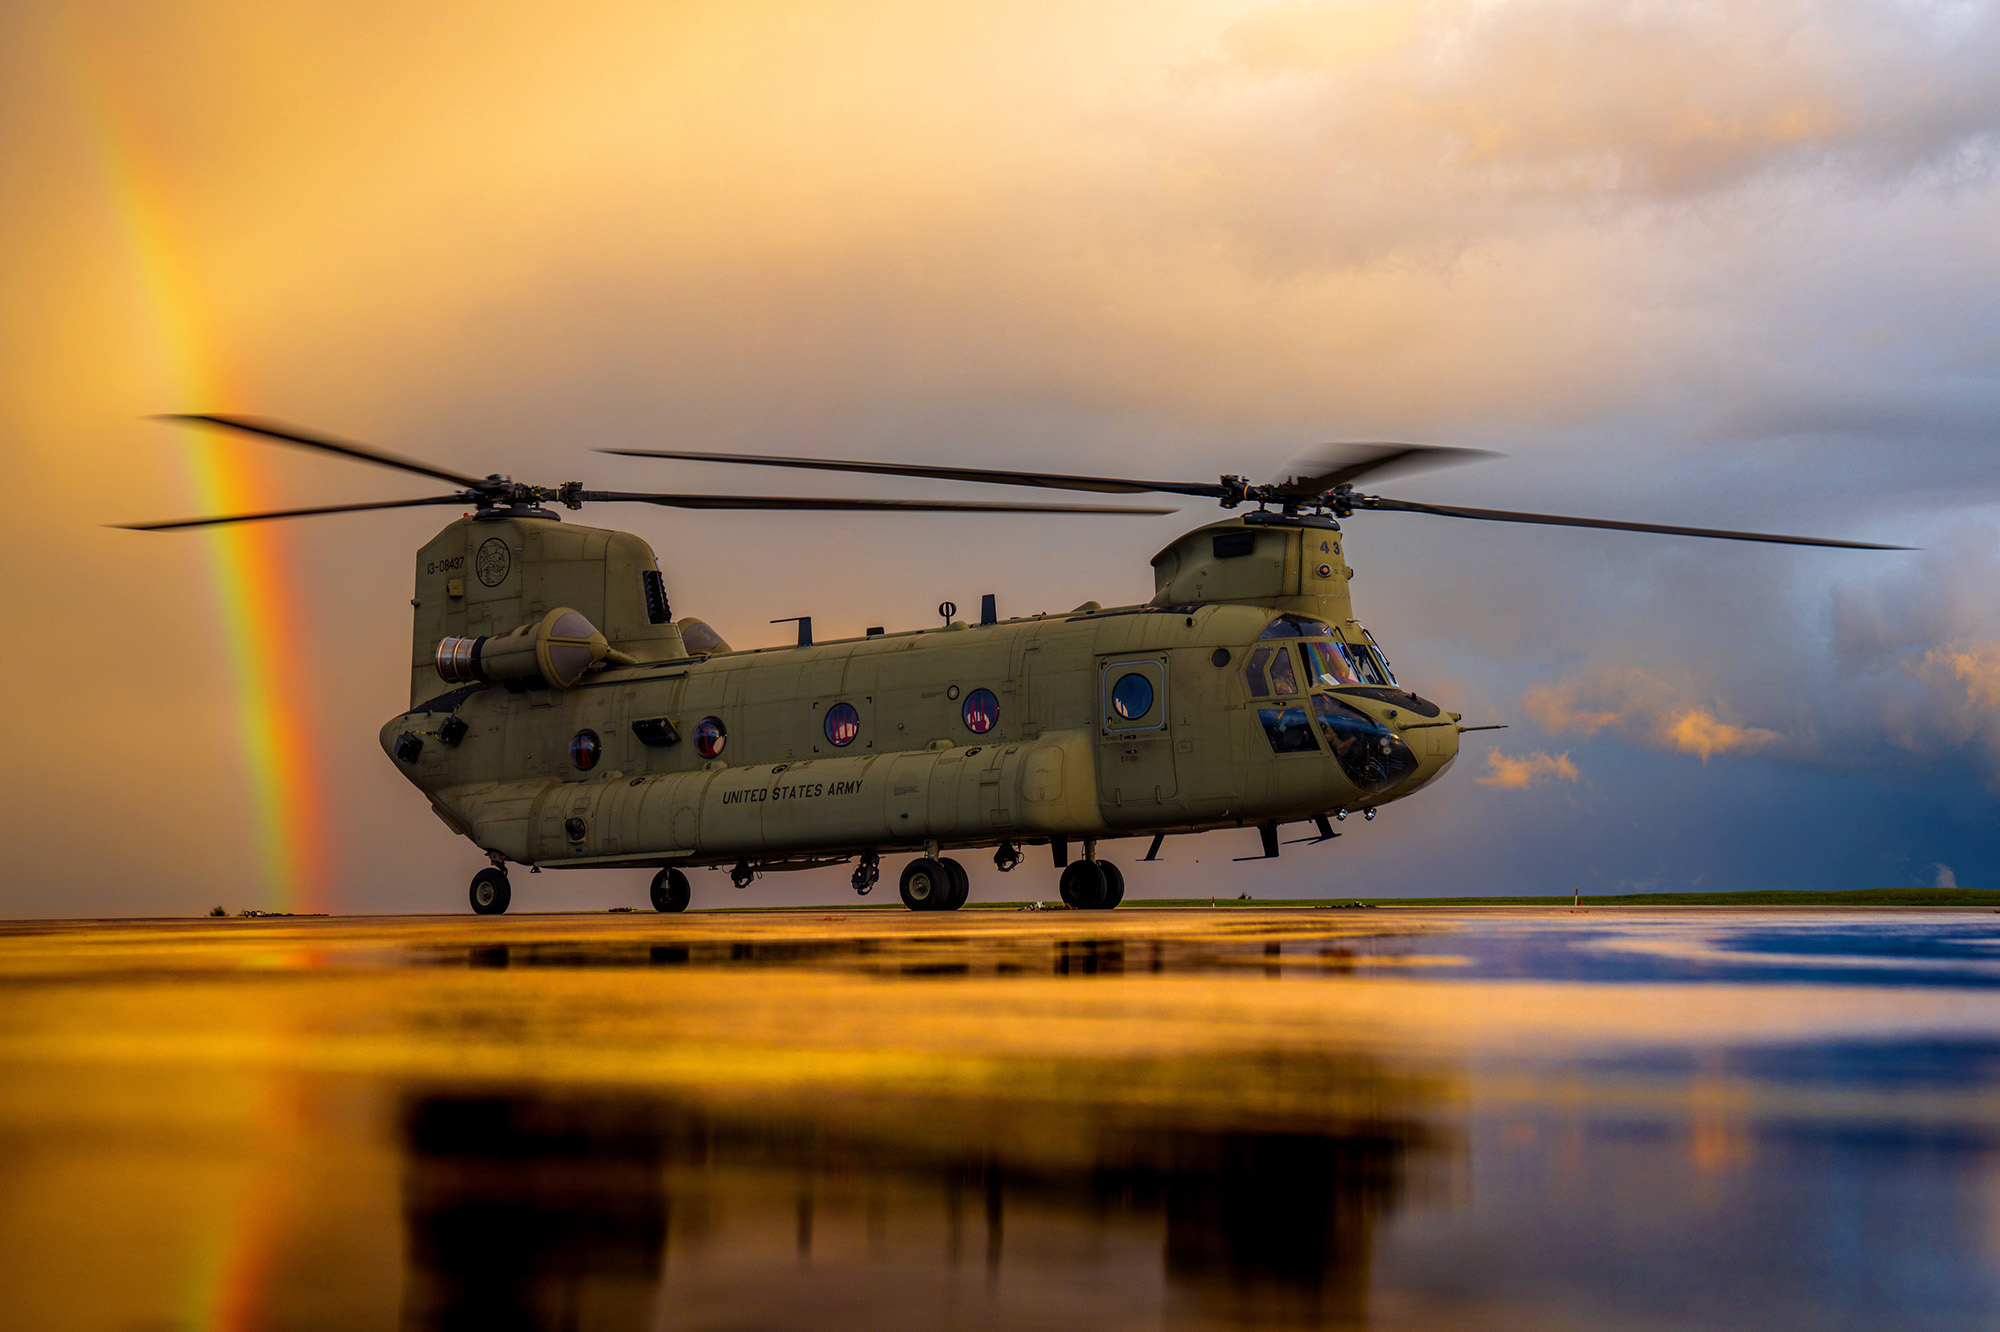 A CH-47 Chinook spins up for an evening training flight just after a storm clears on Oct. 6, 2020, at Katterbach Army Airfield in Germany. (Maj. Robert Fellingham/Army)